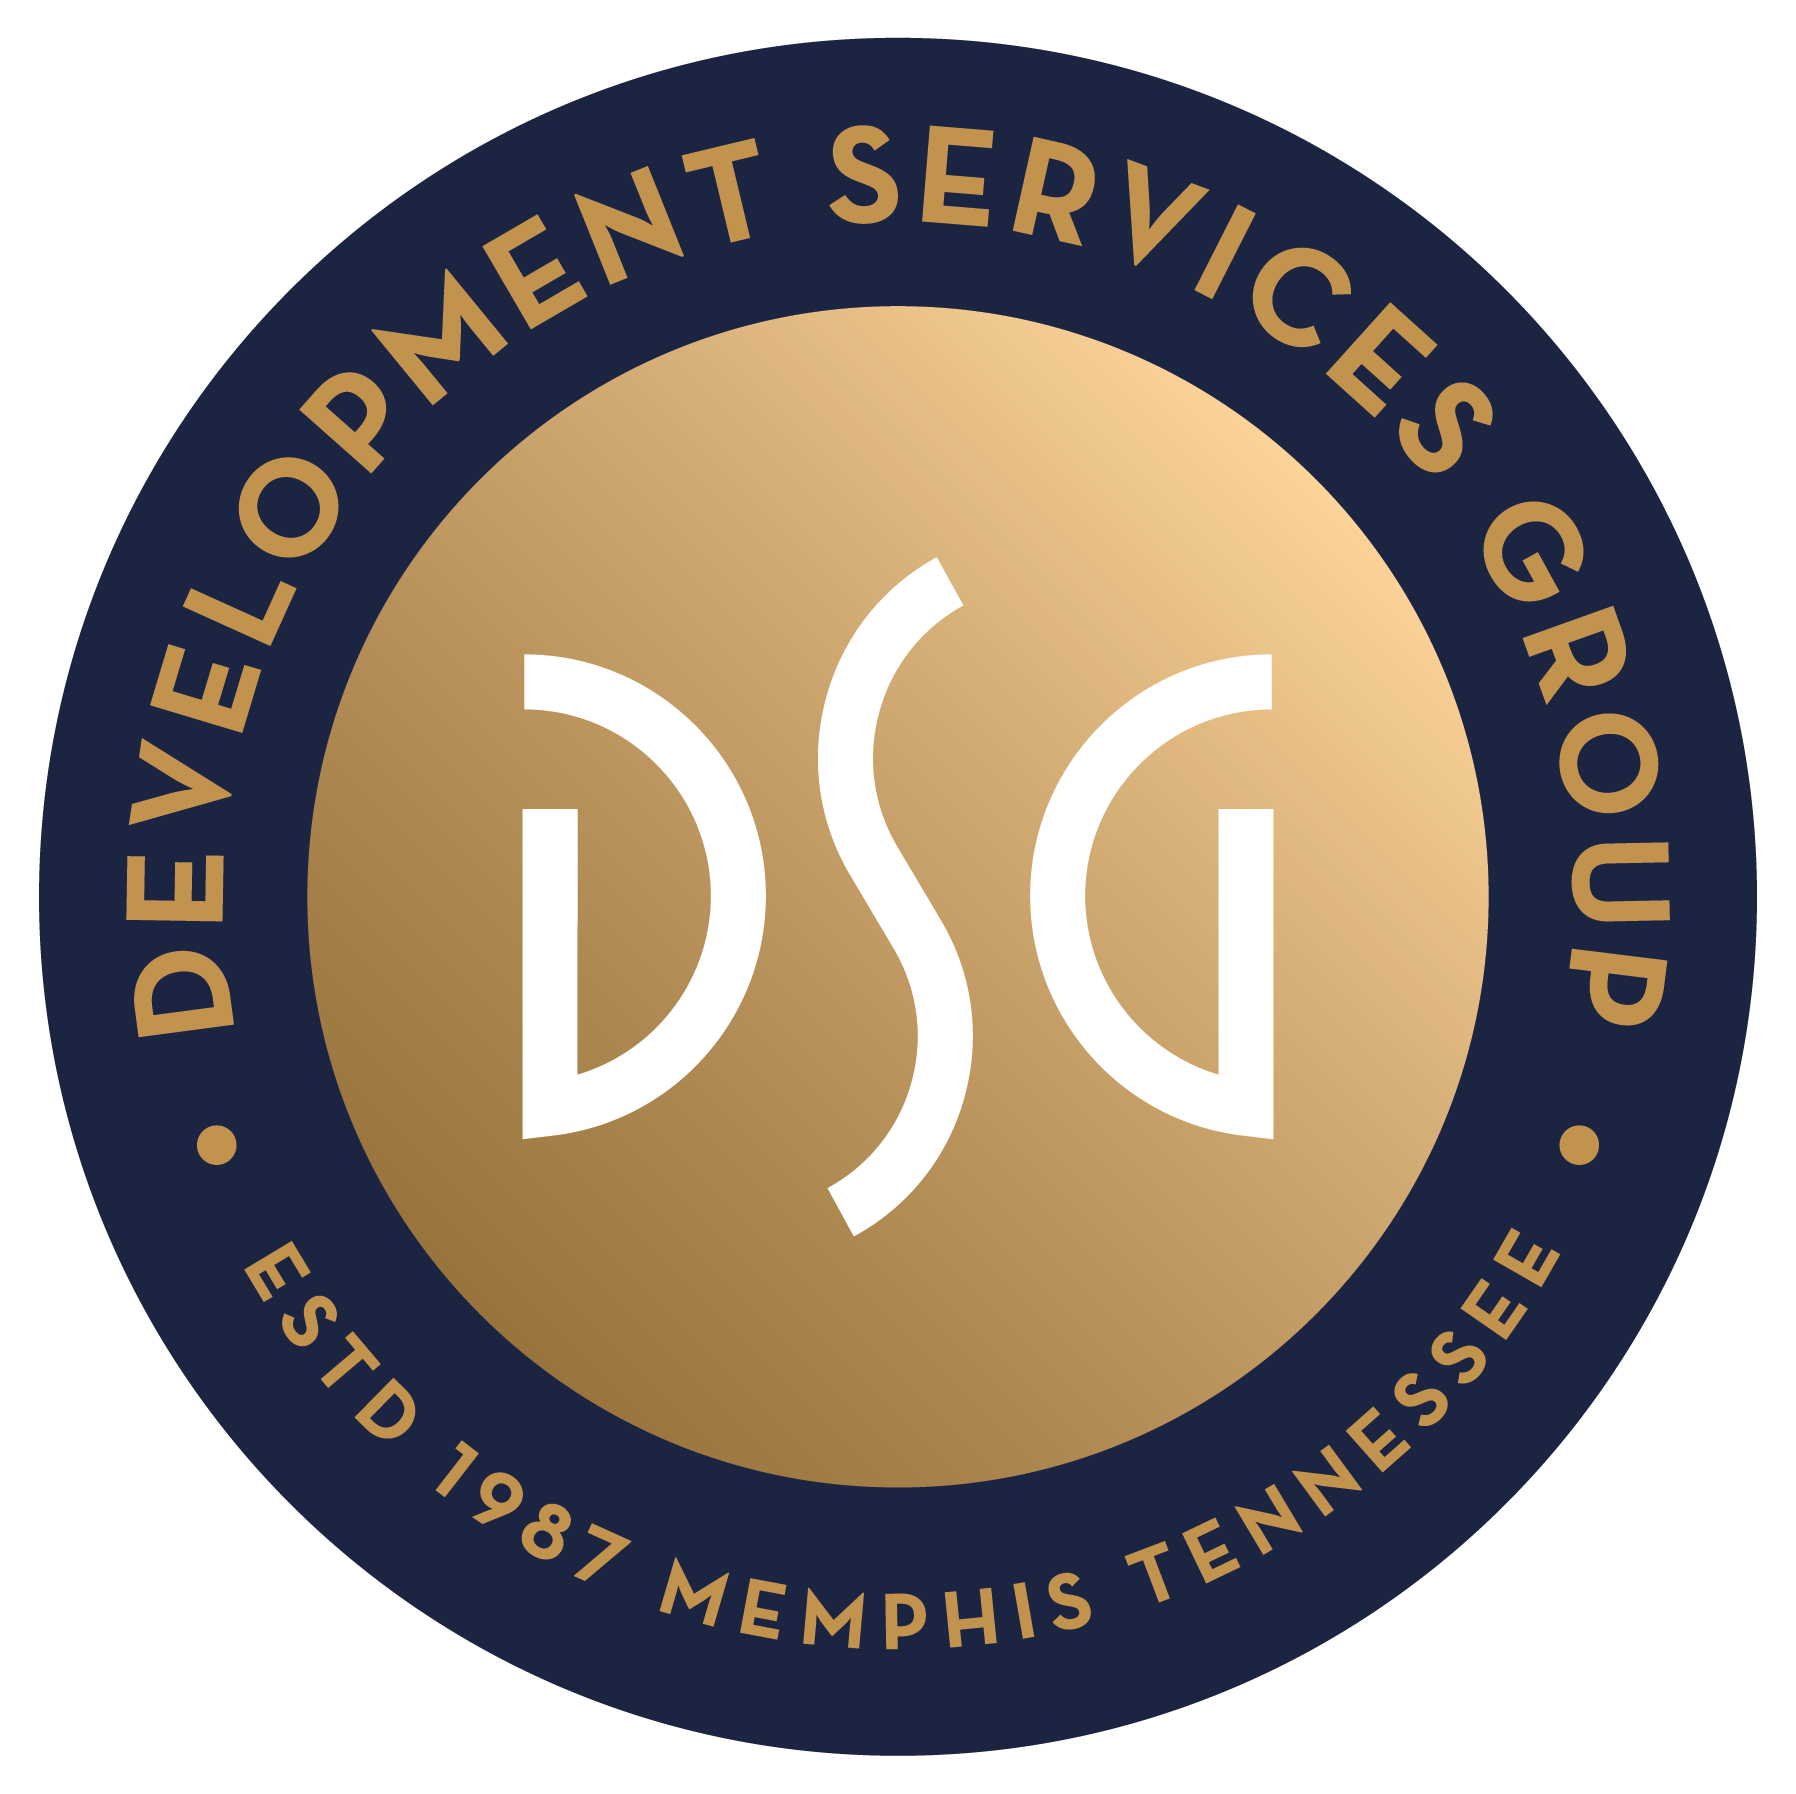 Develop Services Group